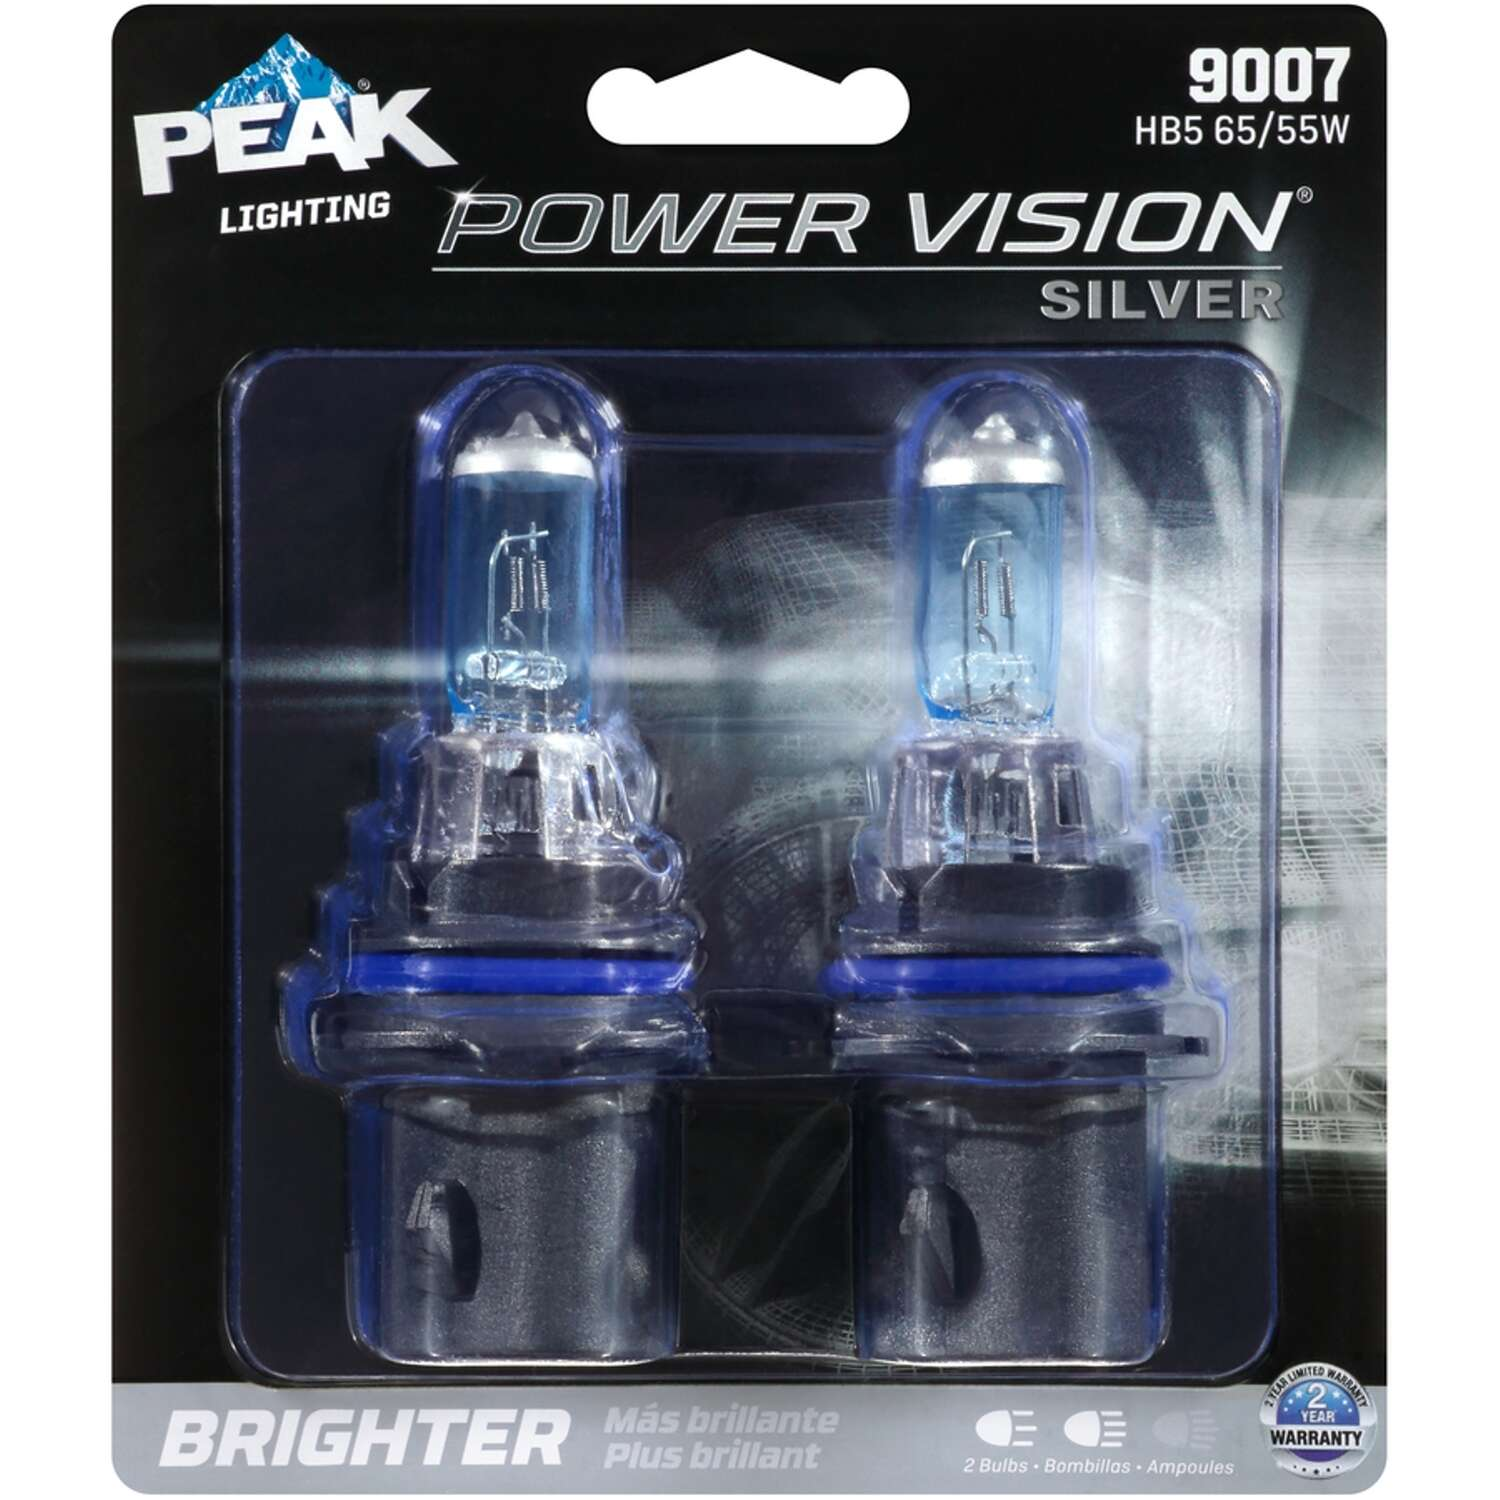 Peak  Power Vision Silver  Halogen  High/Low Beam  Automotive Bulb  9007 HB5 65/55W